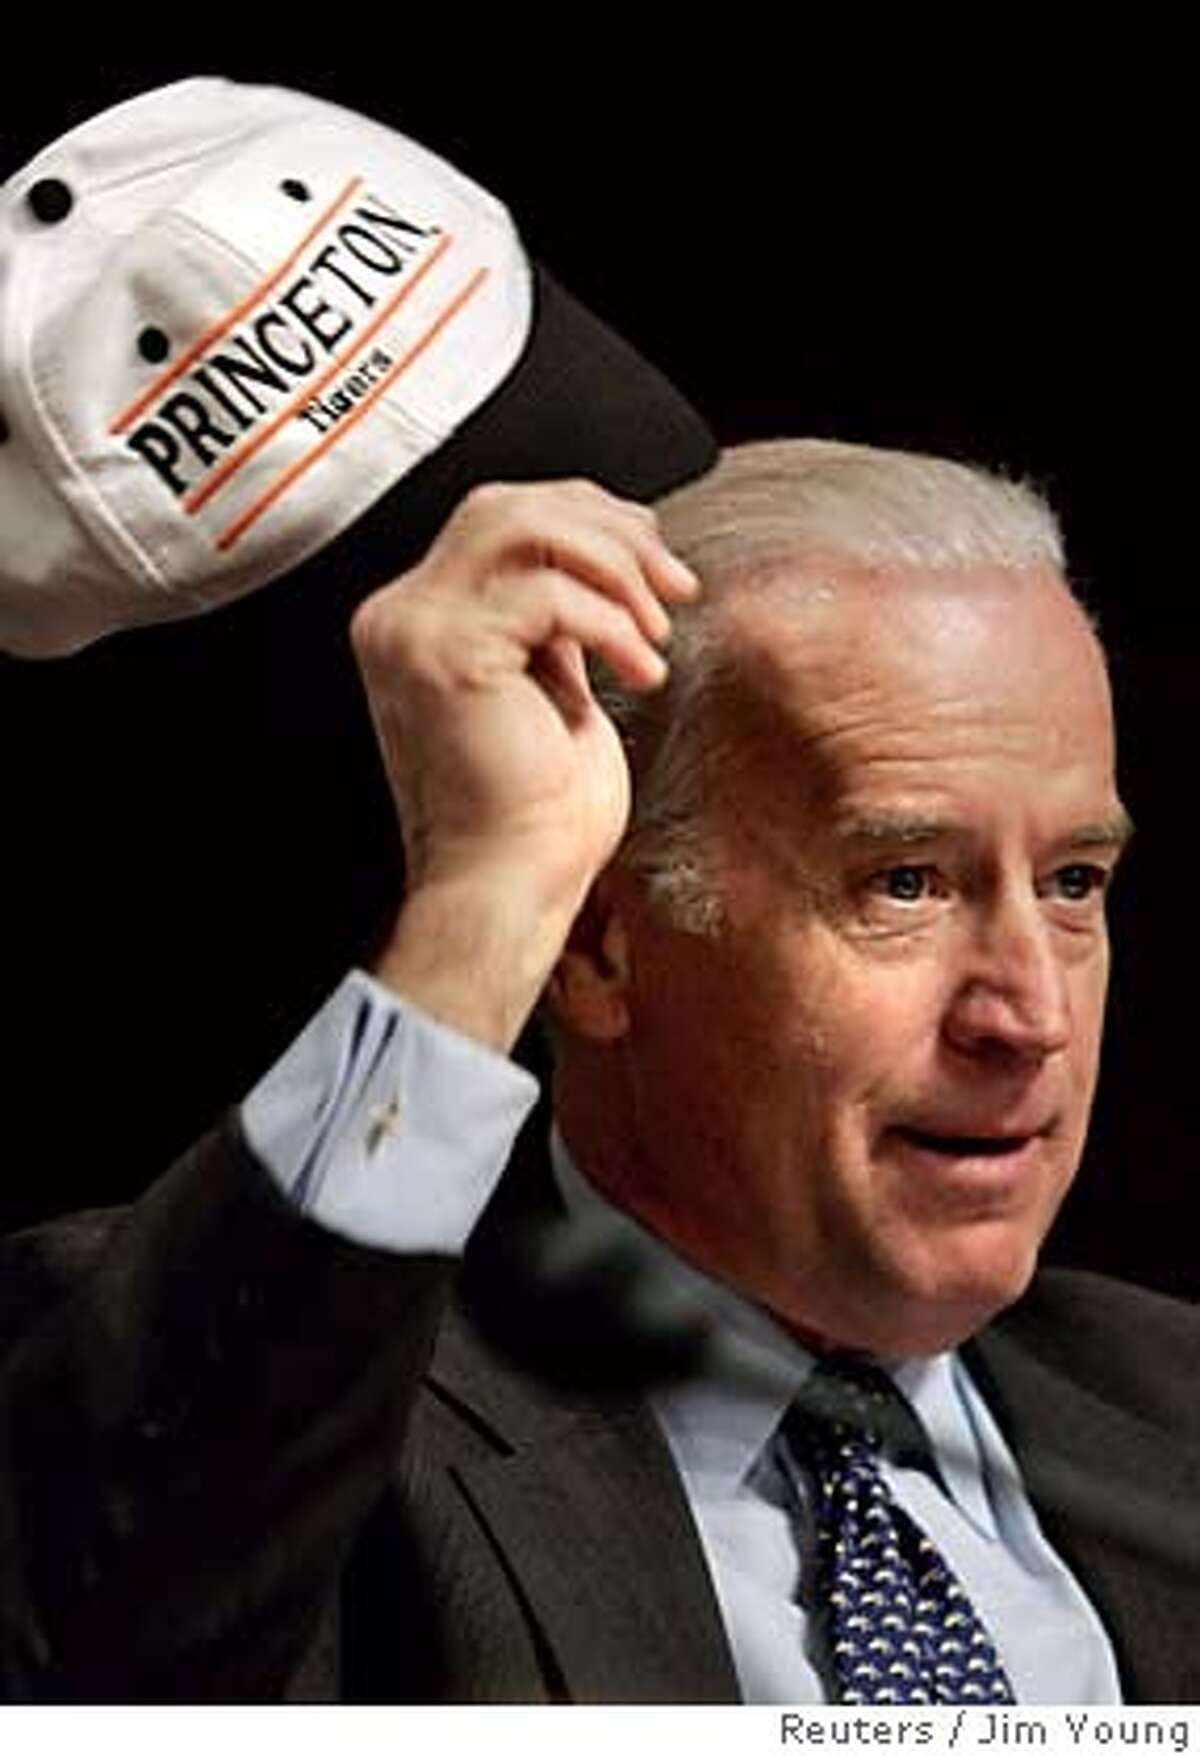 U.S. Senator Joseph Biden (D-DE) shows off a Princeton University cap as he asks questions of Judge Samuel Alito on the third day of Alito's Senate Judiciary Committee confirmation hearing for the U.S. Supreme Court on Capitol Hill in Washington January 11, 2006. Democratic party senators have criticized Alito's inability to recall details about his membership � which he listed on a Reagan administration job application in the 1980's � in a conservative organization that opposed the admission of women and minorities at Princeton University. REUTERS/Jim Young 0